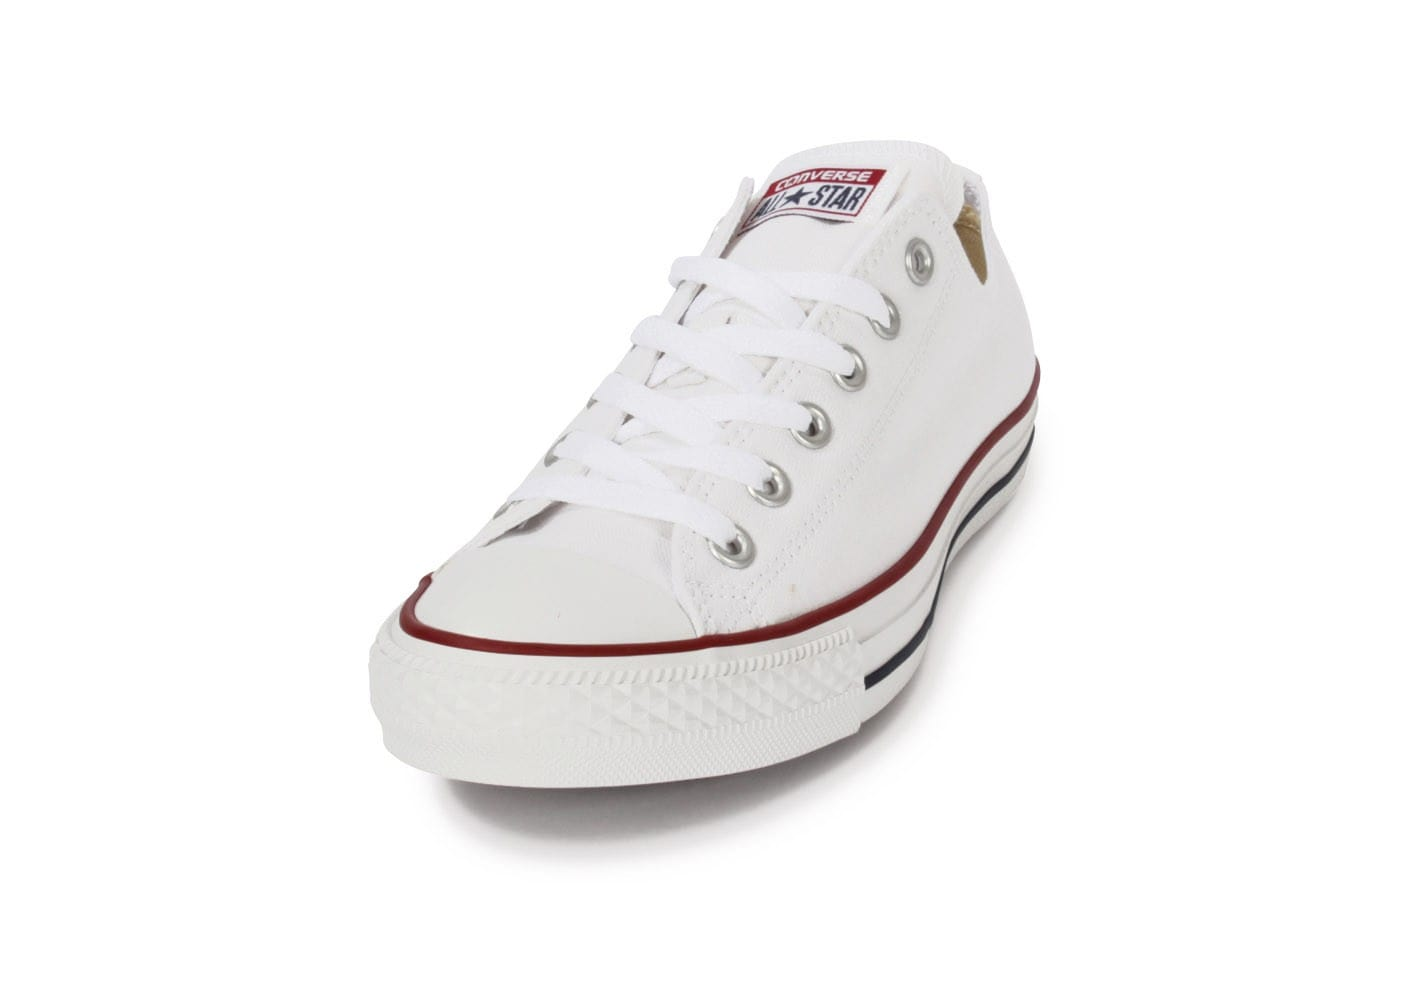 huge selection of 99f9c d72aa ... Chaussures Converse Chuck Taylor All Star low blanche vue avant ...